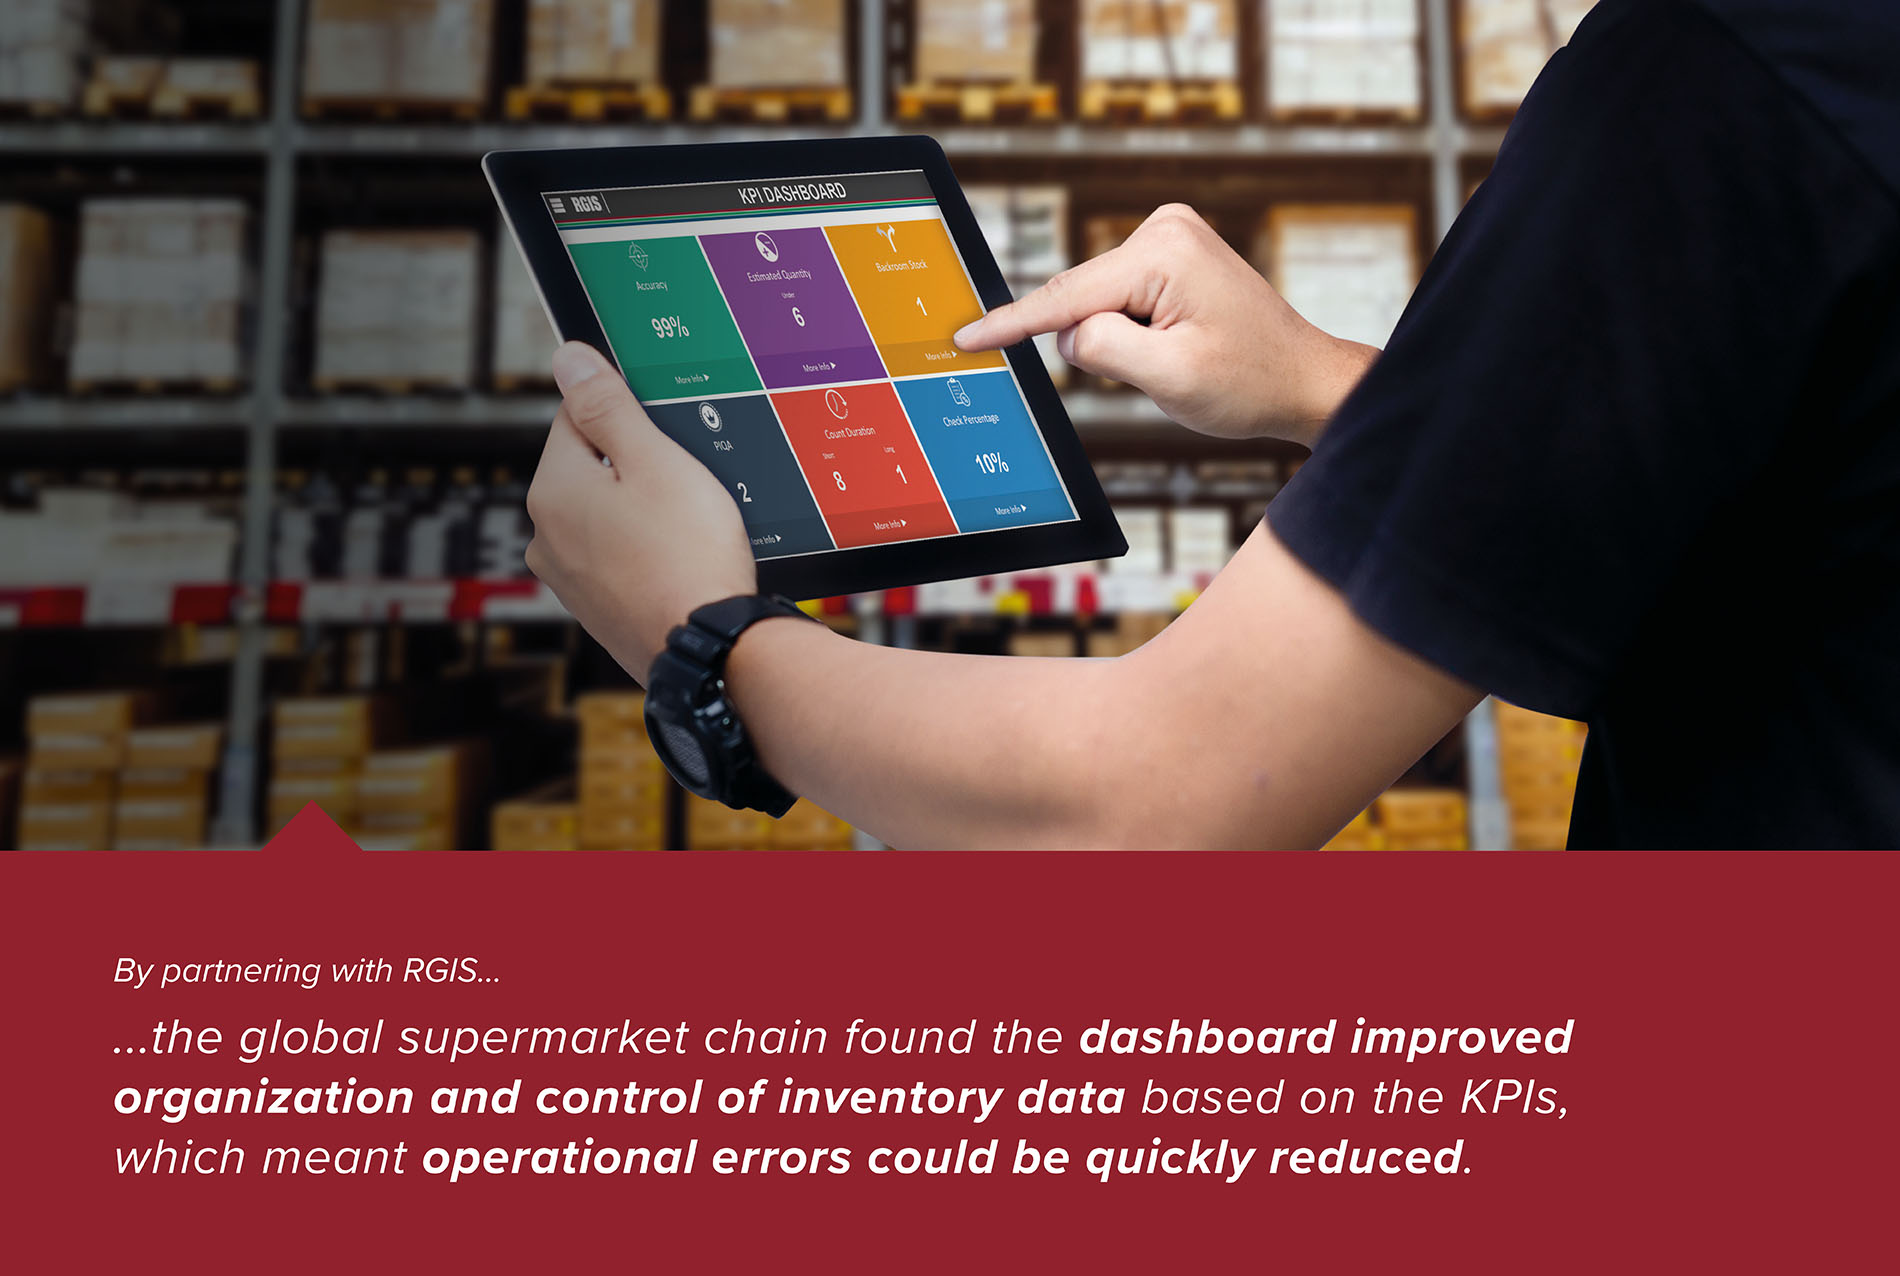 Supermarket Delivery Check with Dashboard Reporting